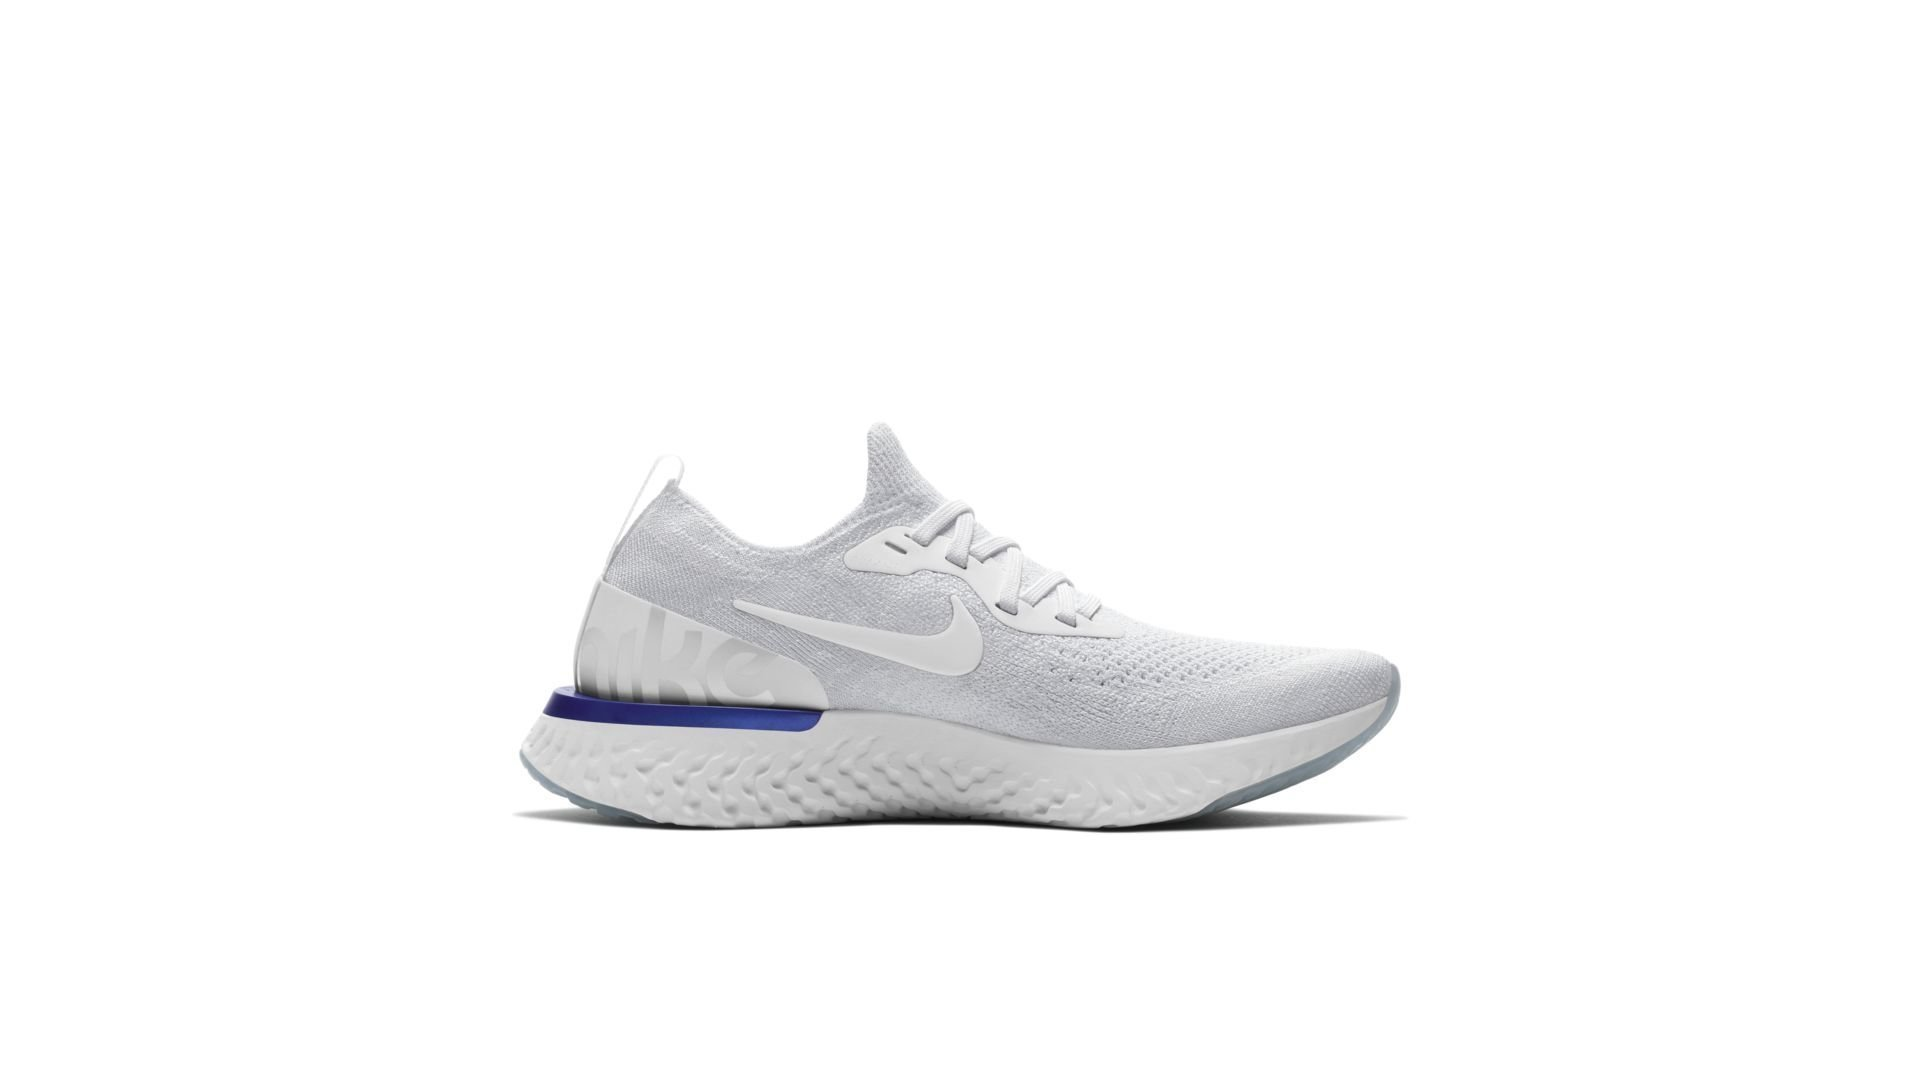 Nike Epic React Flyknit White Racer Blue (W) (AQ0070-100)